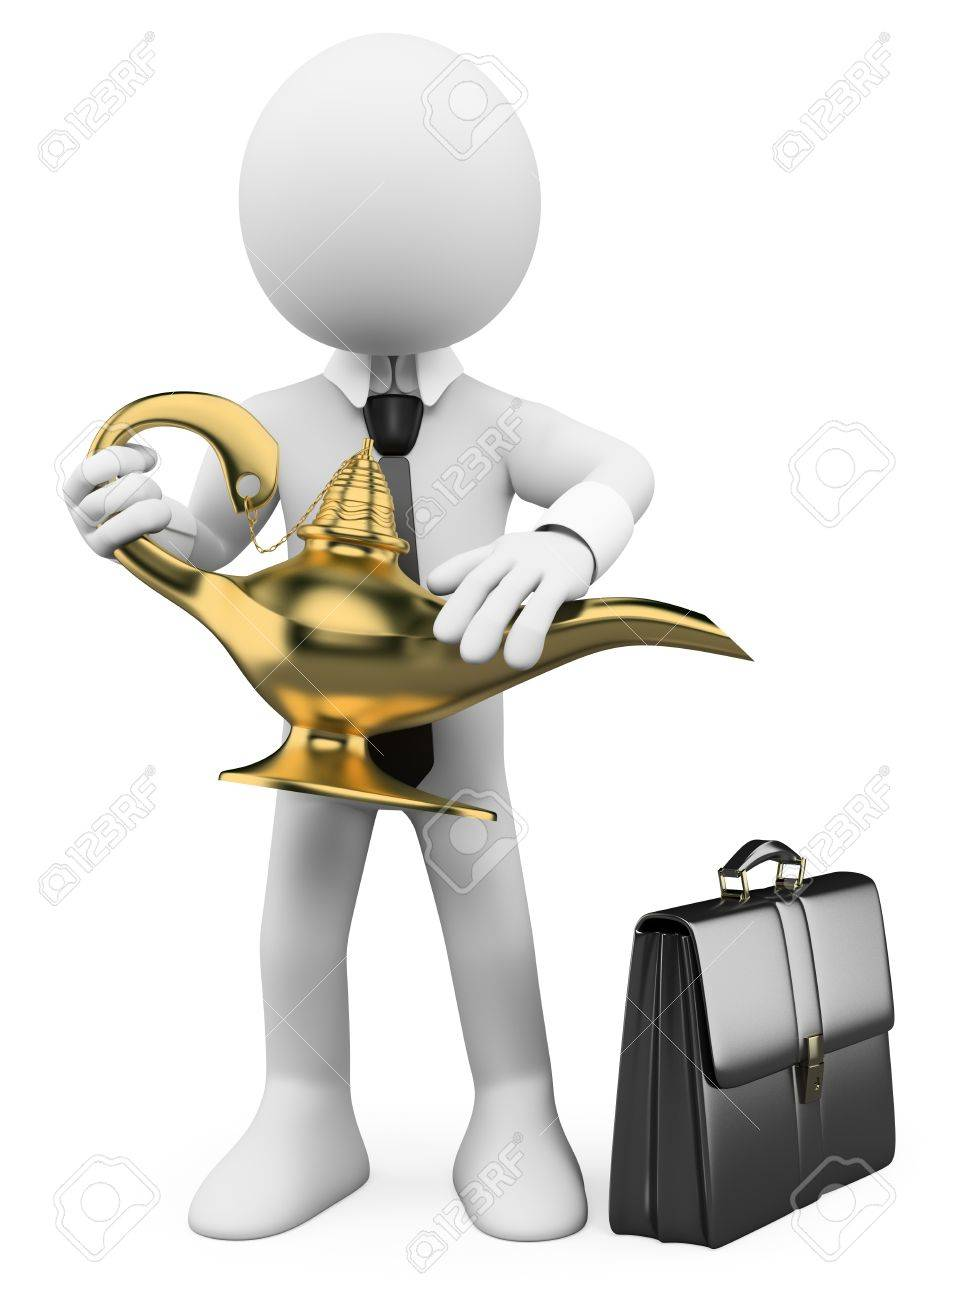 3d white business person rubbing a magic lamp. 3d image. Isolated white background. Stock Photo - 18728601